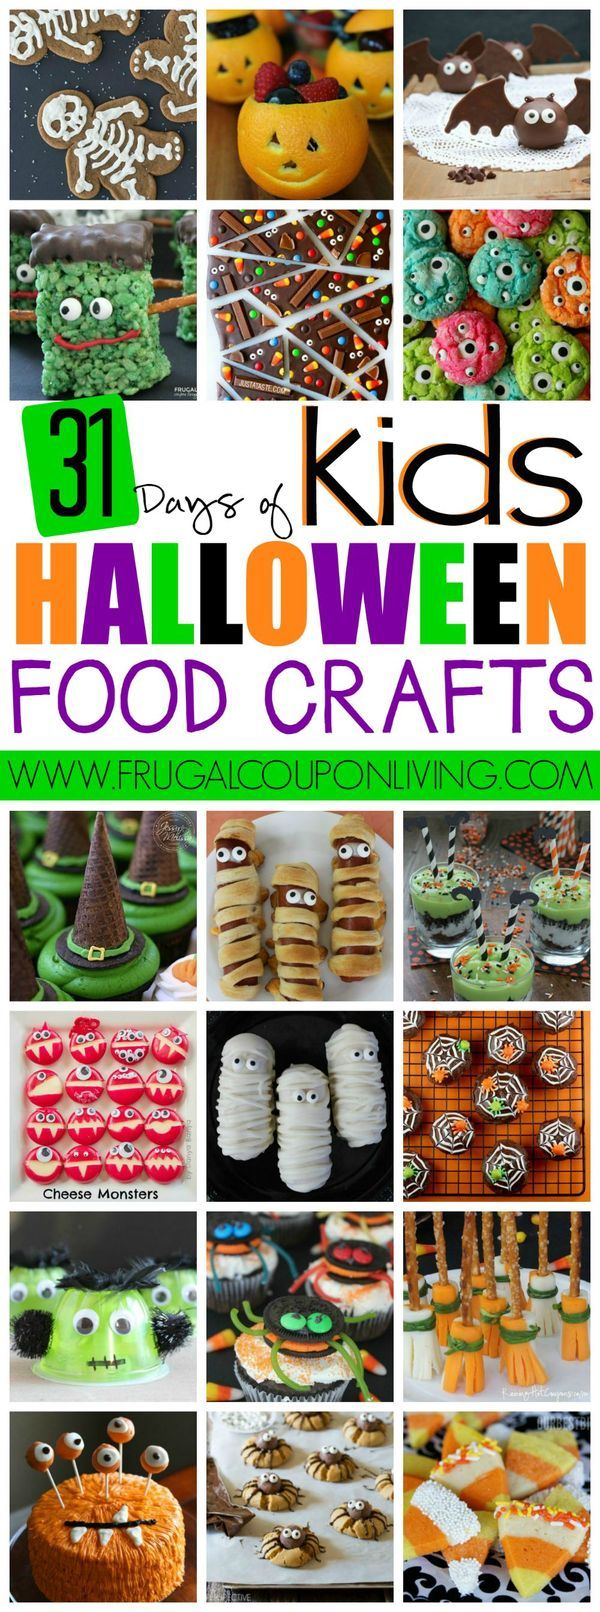 31 days of Halloween Food Crafts for Kids on Frugal Coupon Living - Halloween Party Idea, Recipes for October Fall Parties and more!